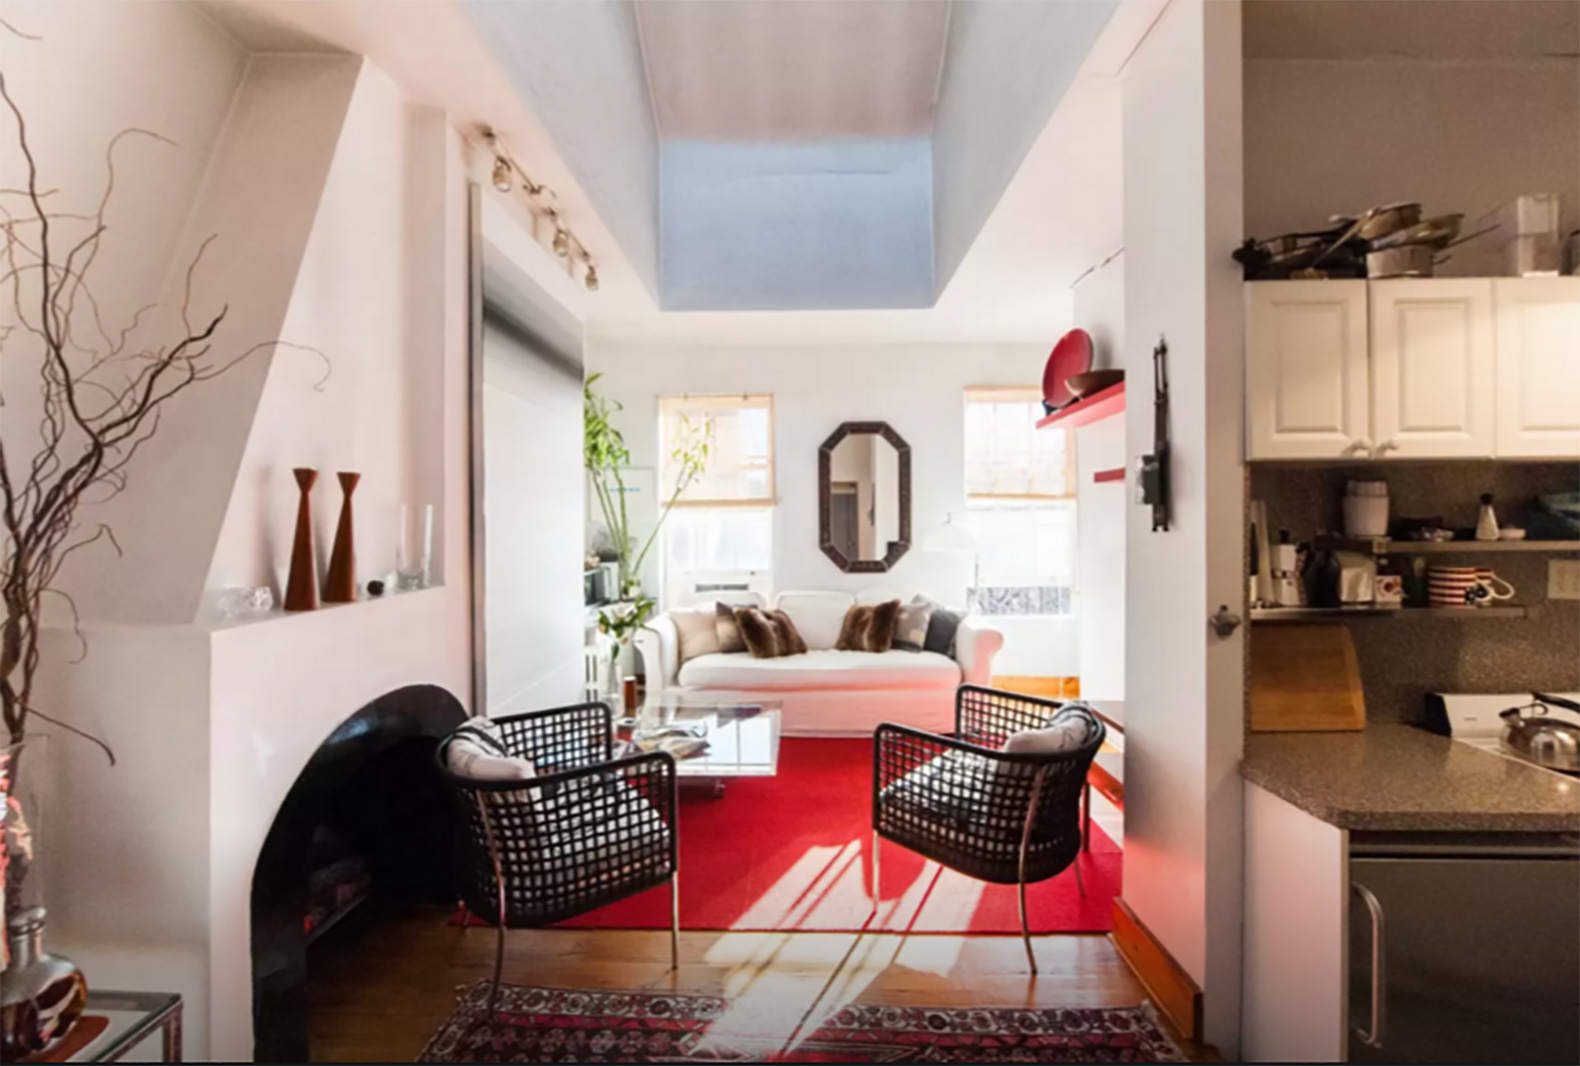 Tiny Home Designs: Greenwich Village Tiny Apartment « Inhabitat